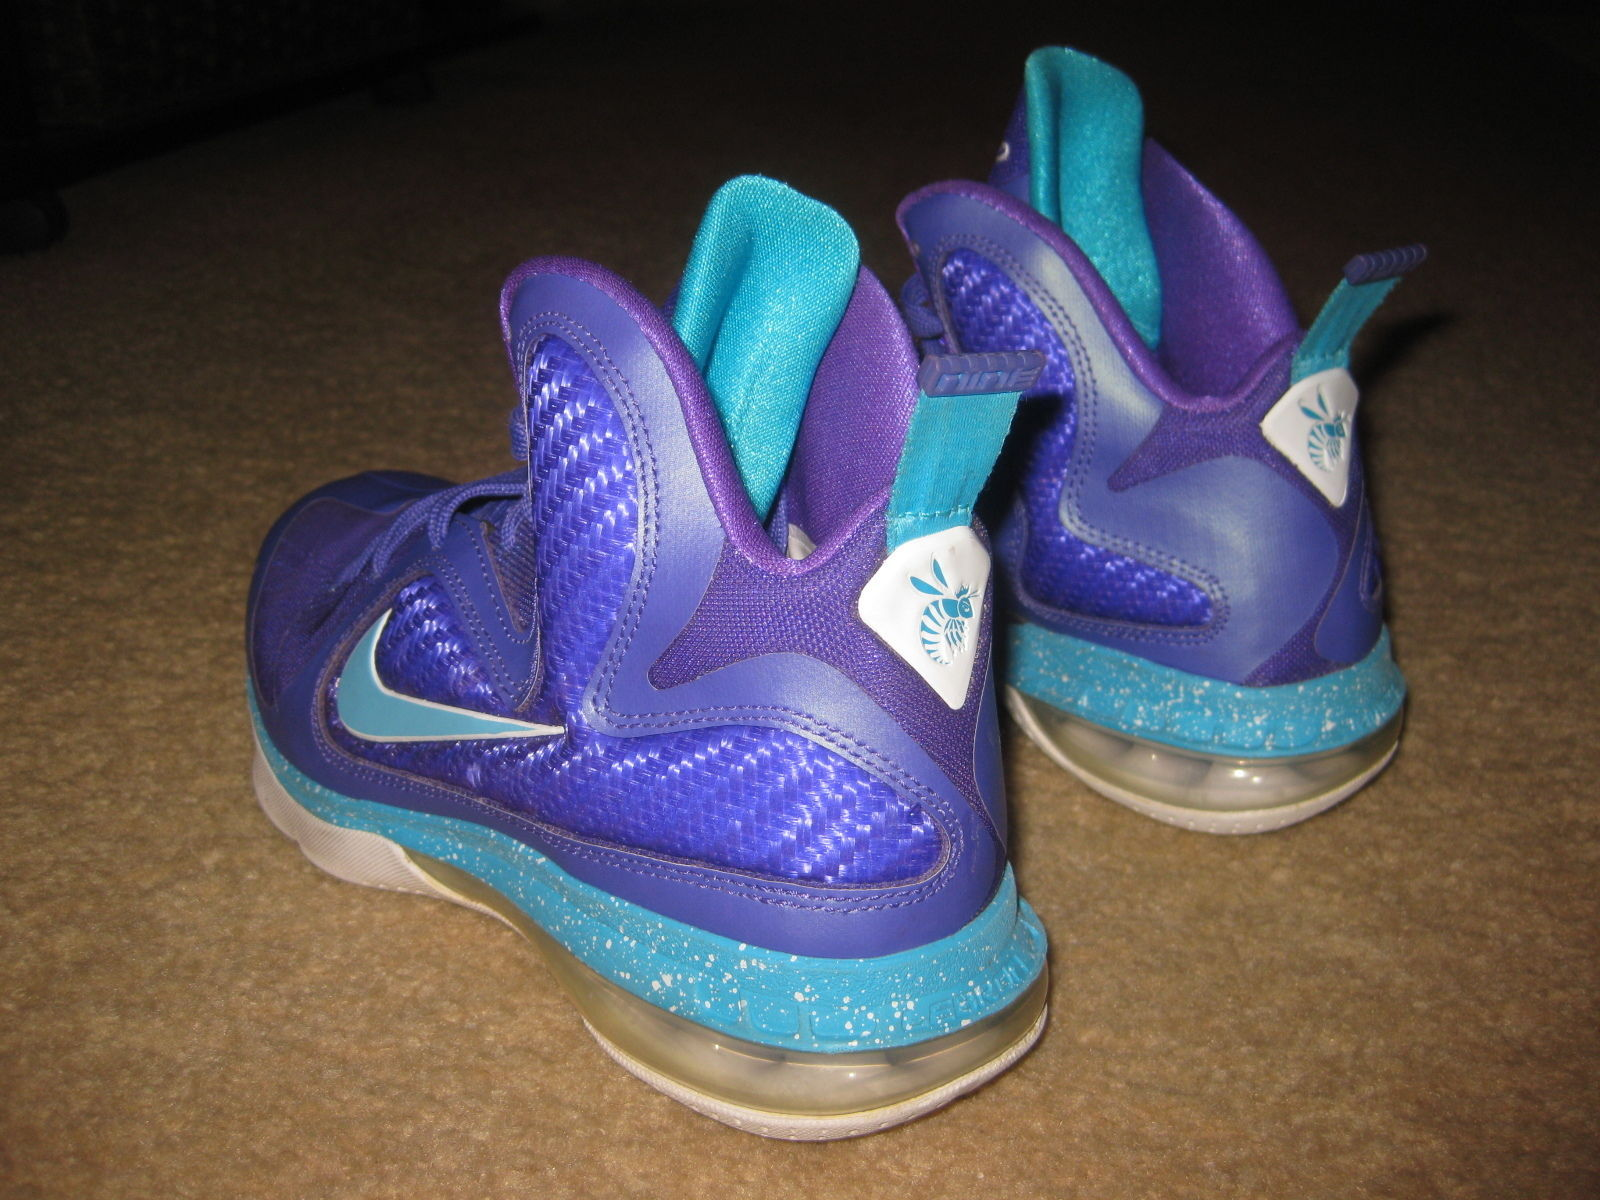 size 40 7e5a0 c7105 NIKE LEBRON JAMES 9 GS SUMMIT LAKE HORNETS 472664-500 US SIZE 5Y KIDS NICE